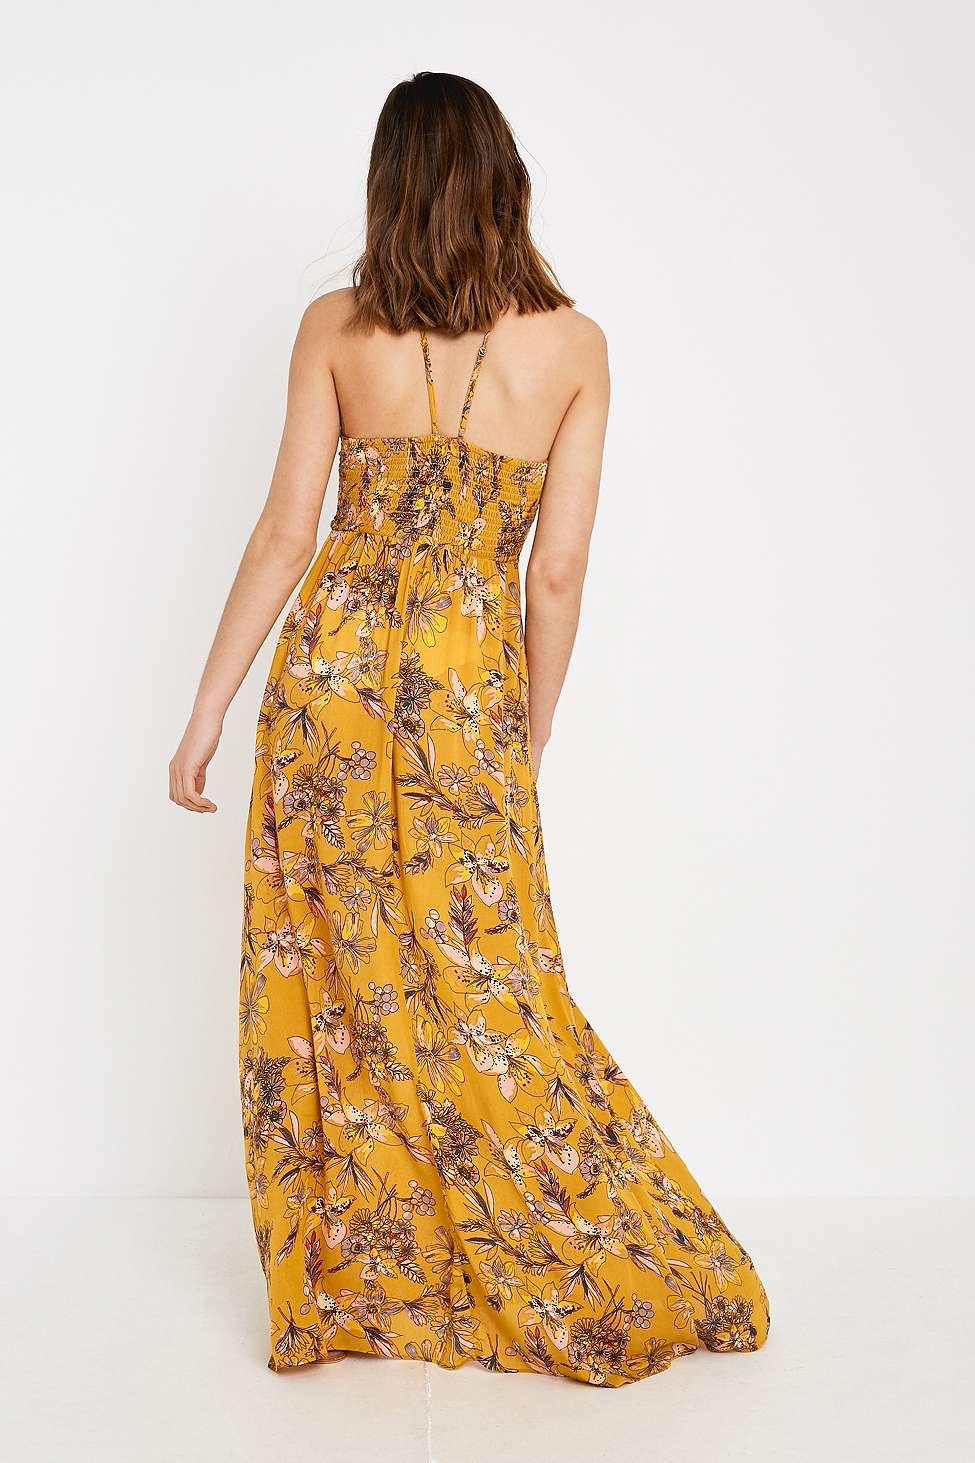 783671687fe8 Free People - One Step Ahead Yellow Floral Maxi Dress - Womens S - Lyst.  View fullscreen